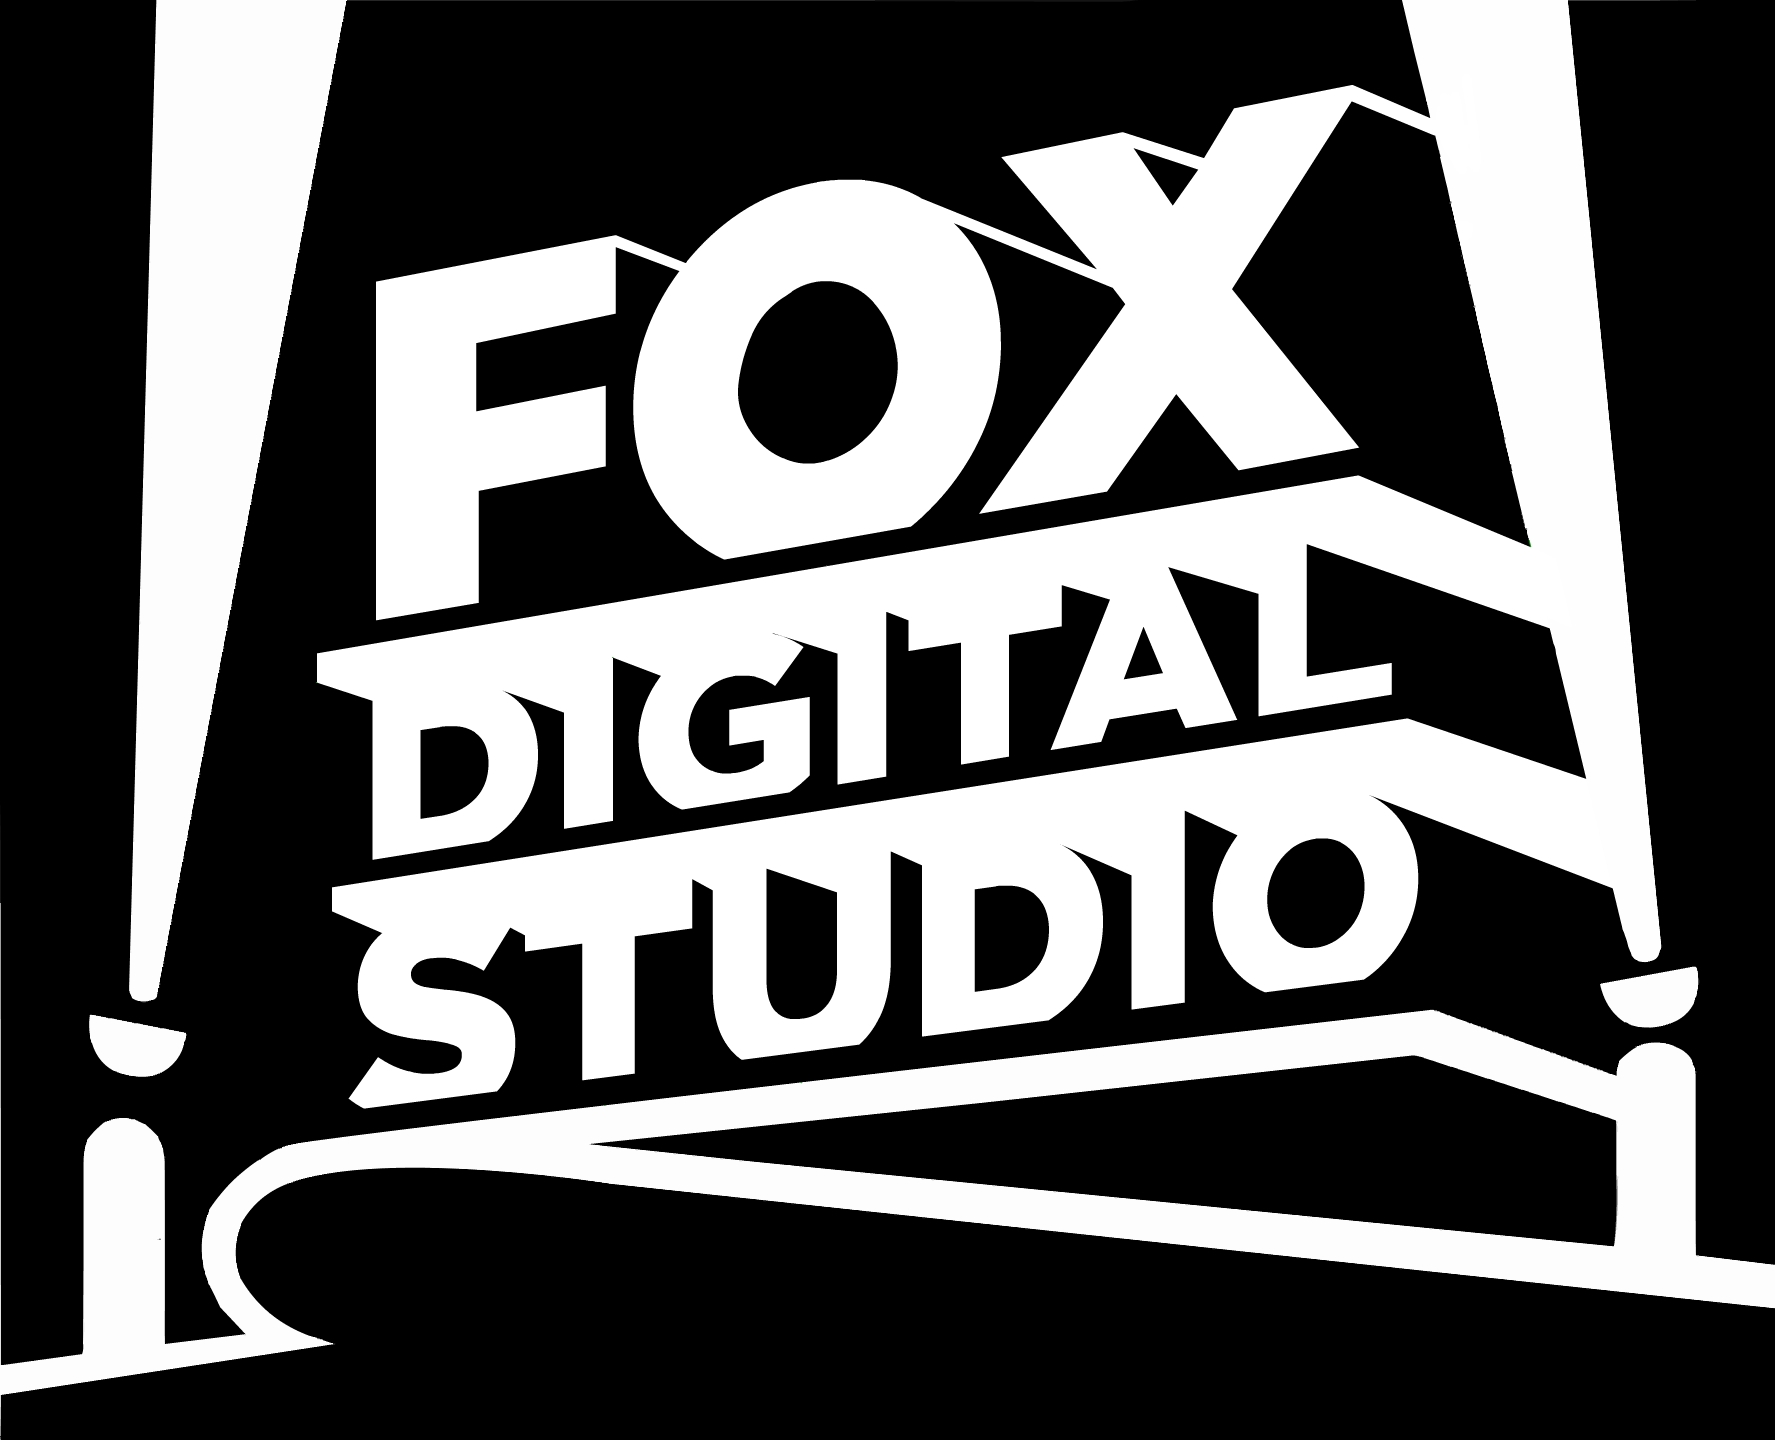 20th Digital Studio